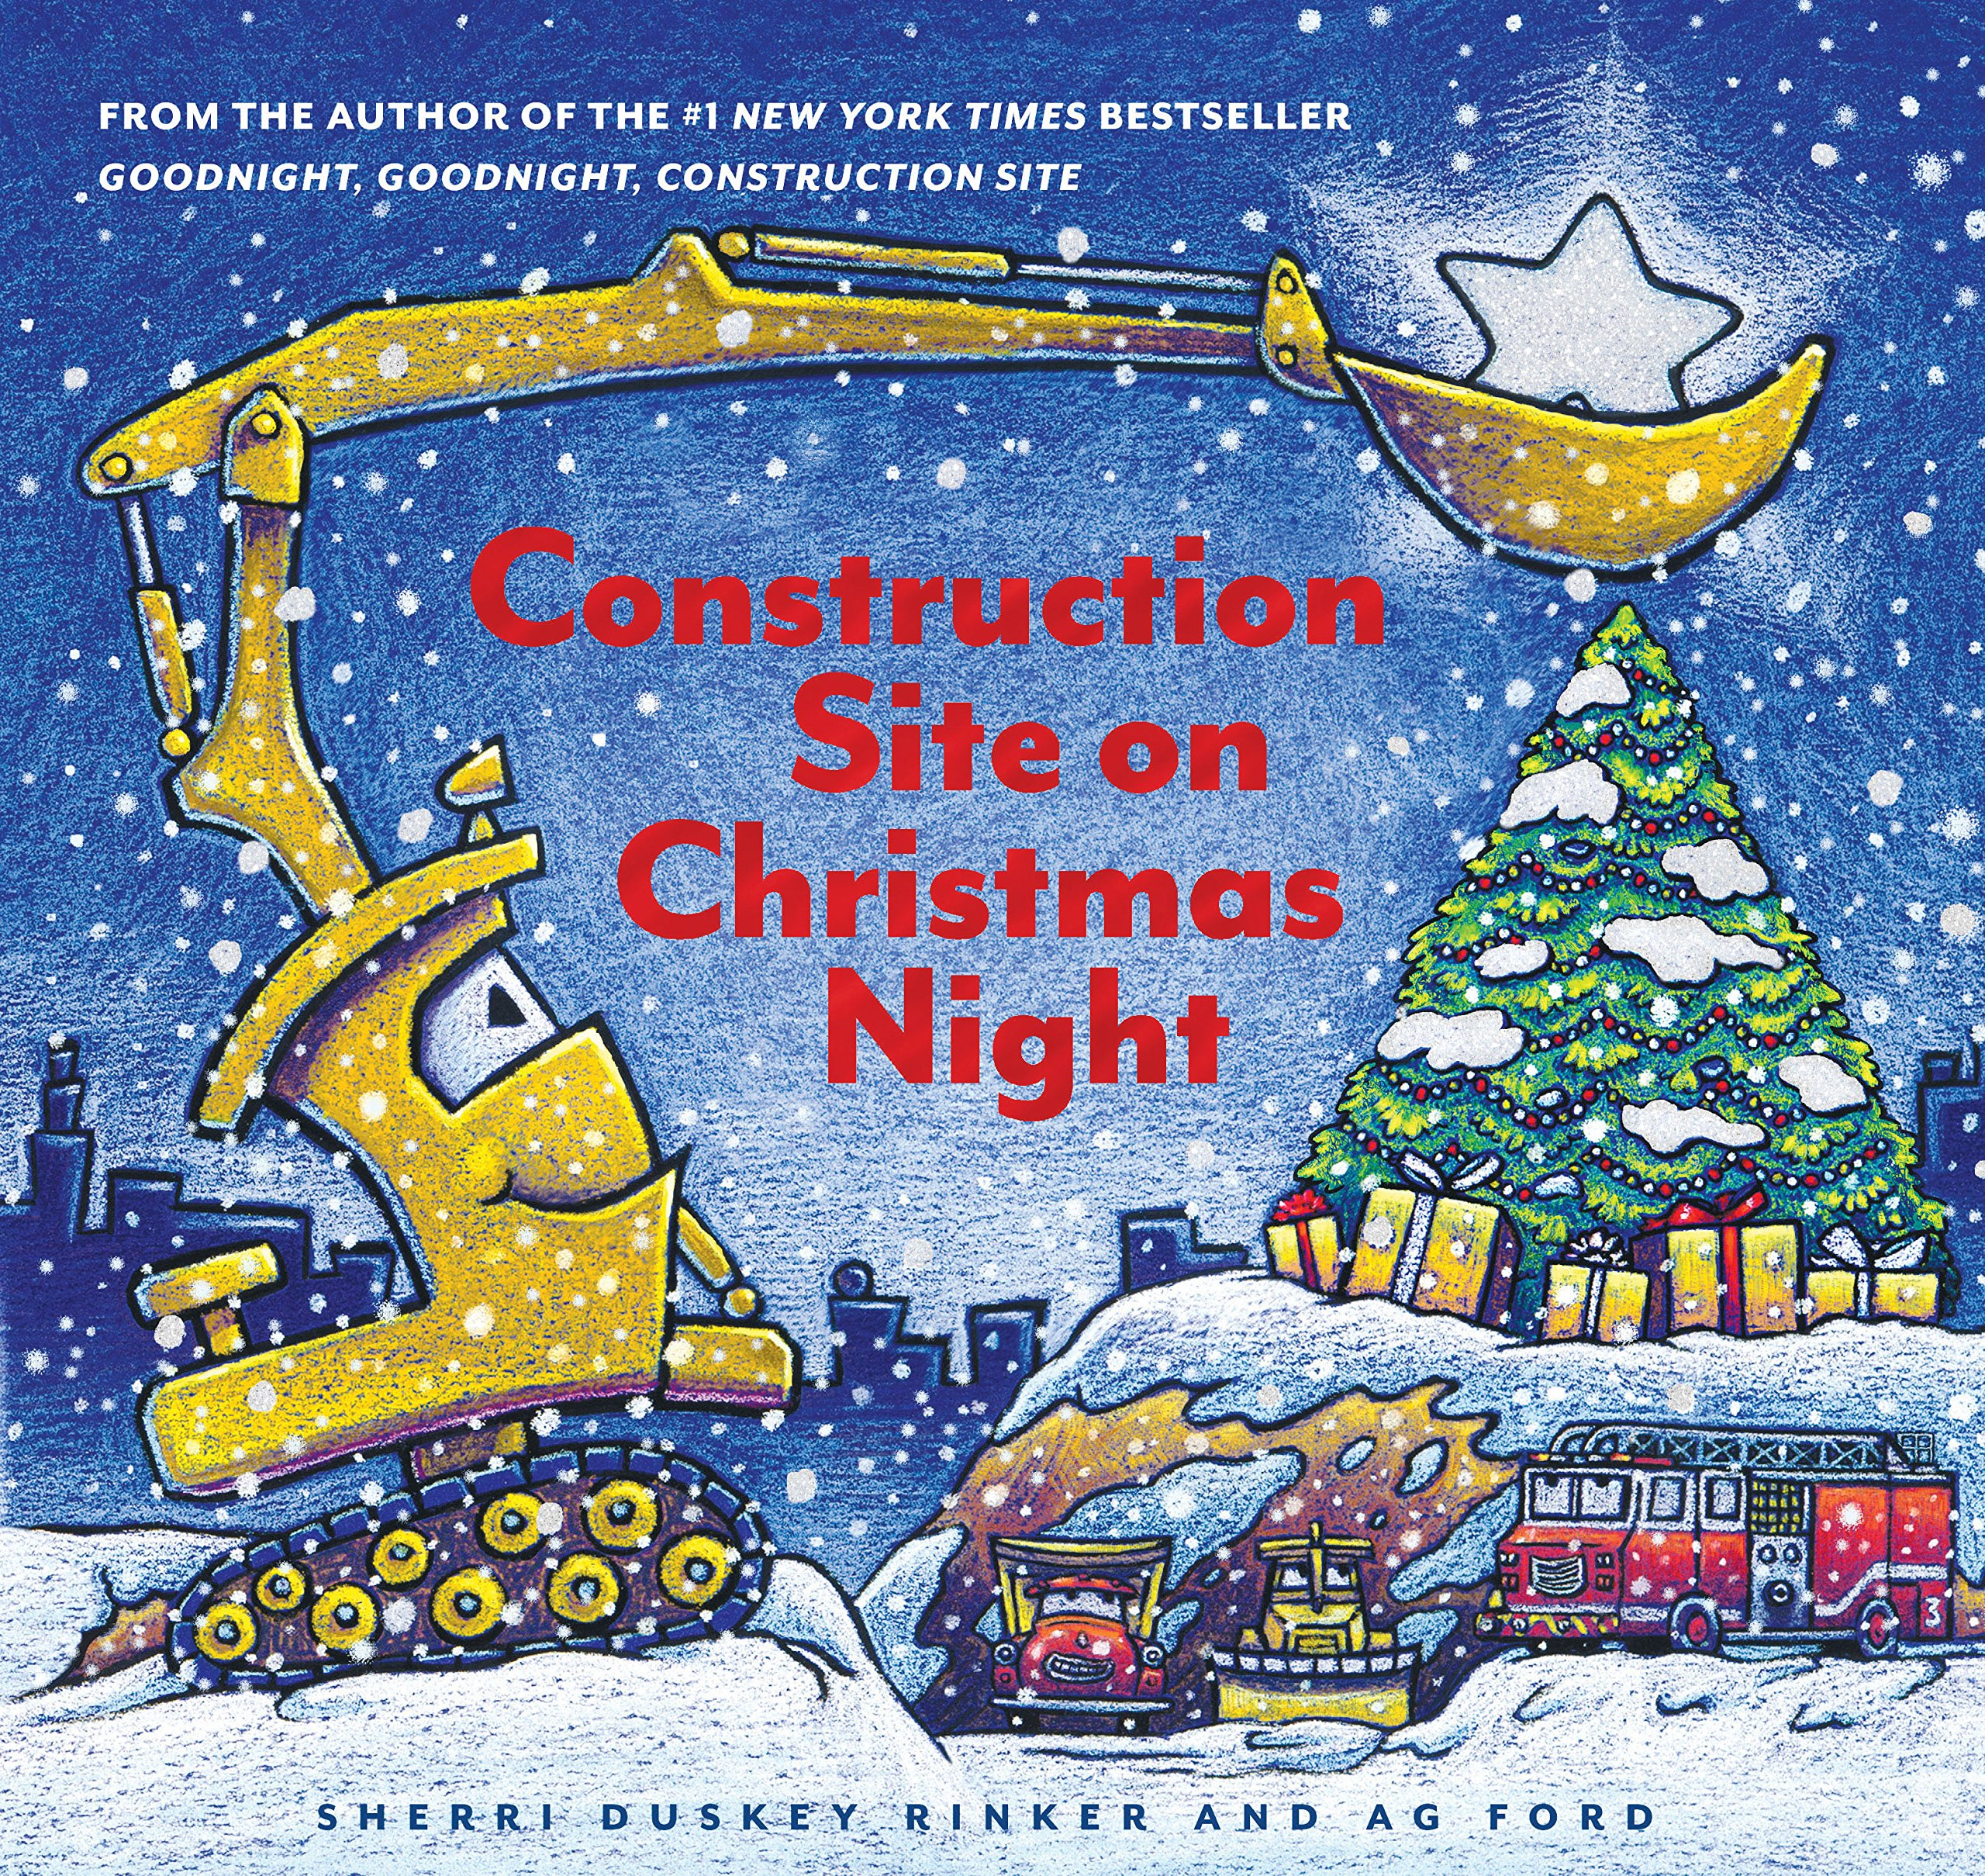 Merry Christmas 2020 Construction Construction Site on Christmas Night: (Christmas Book for Kids